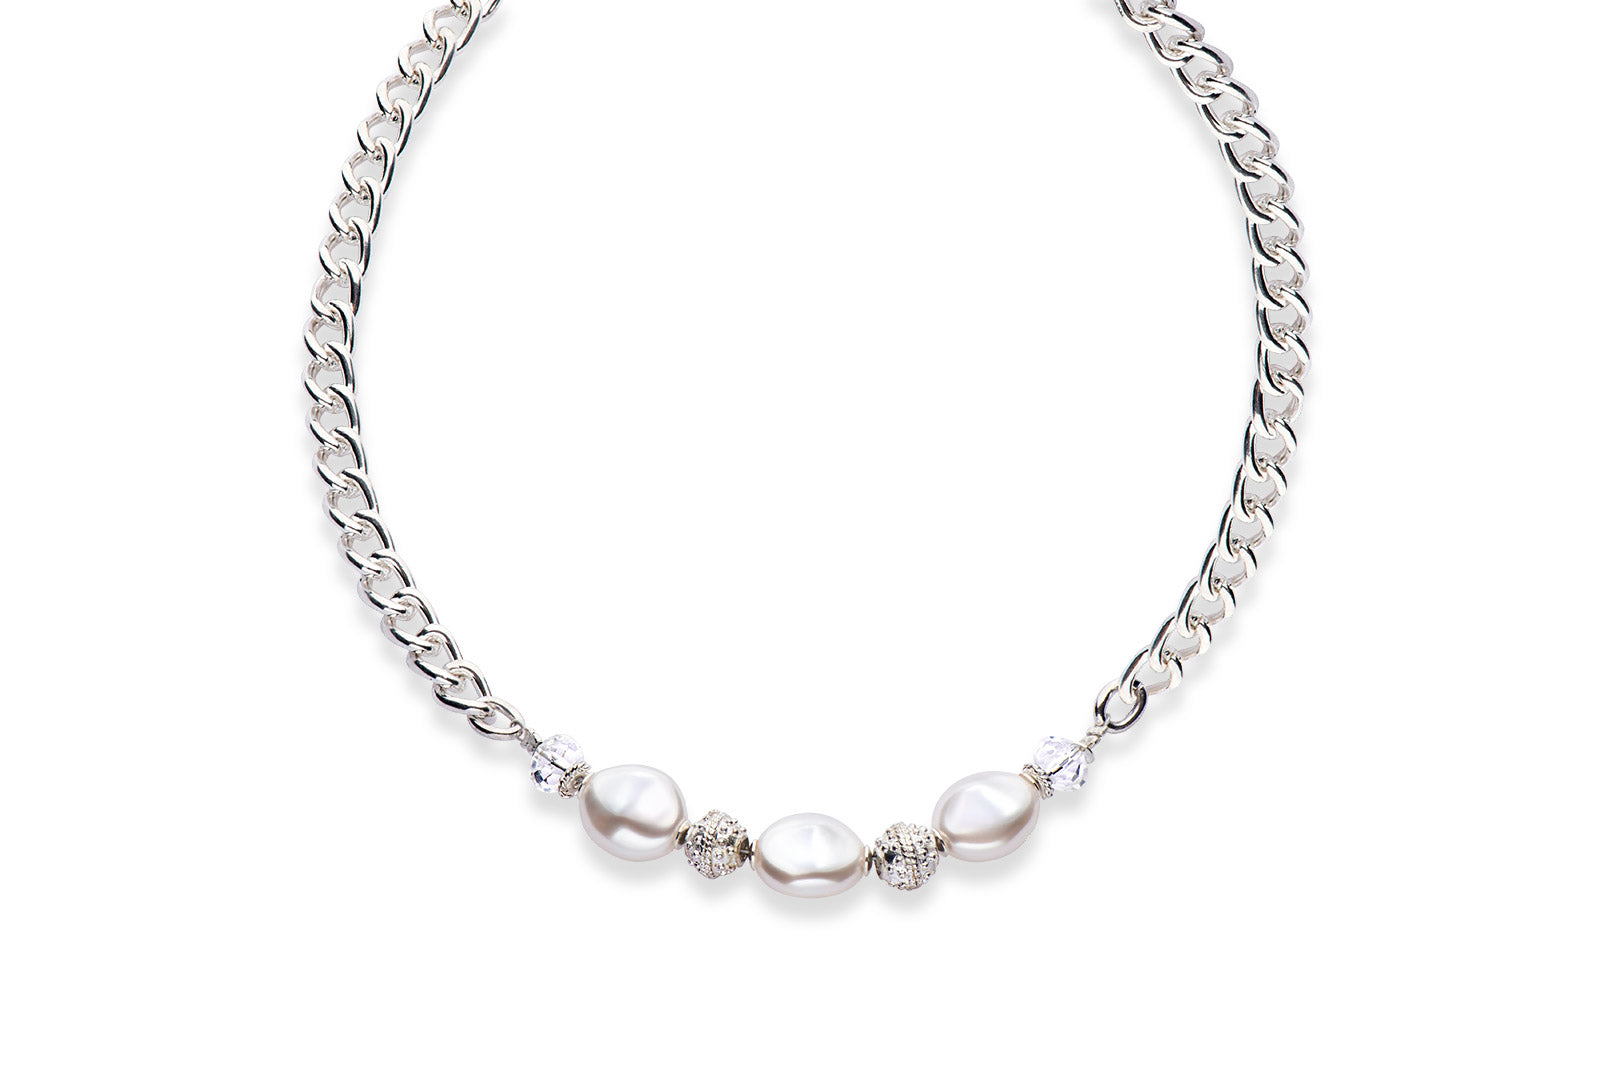 A silver necklace with baroque Swarovski crystal pearls